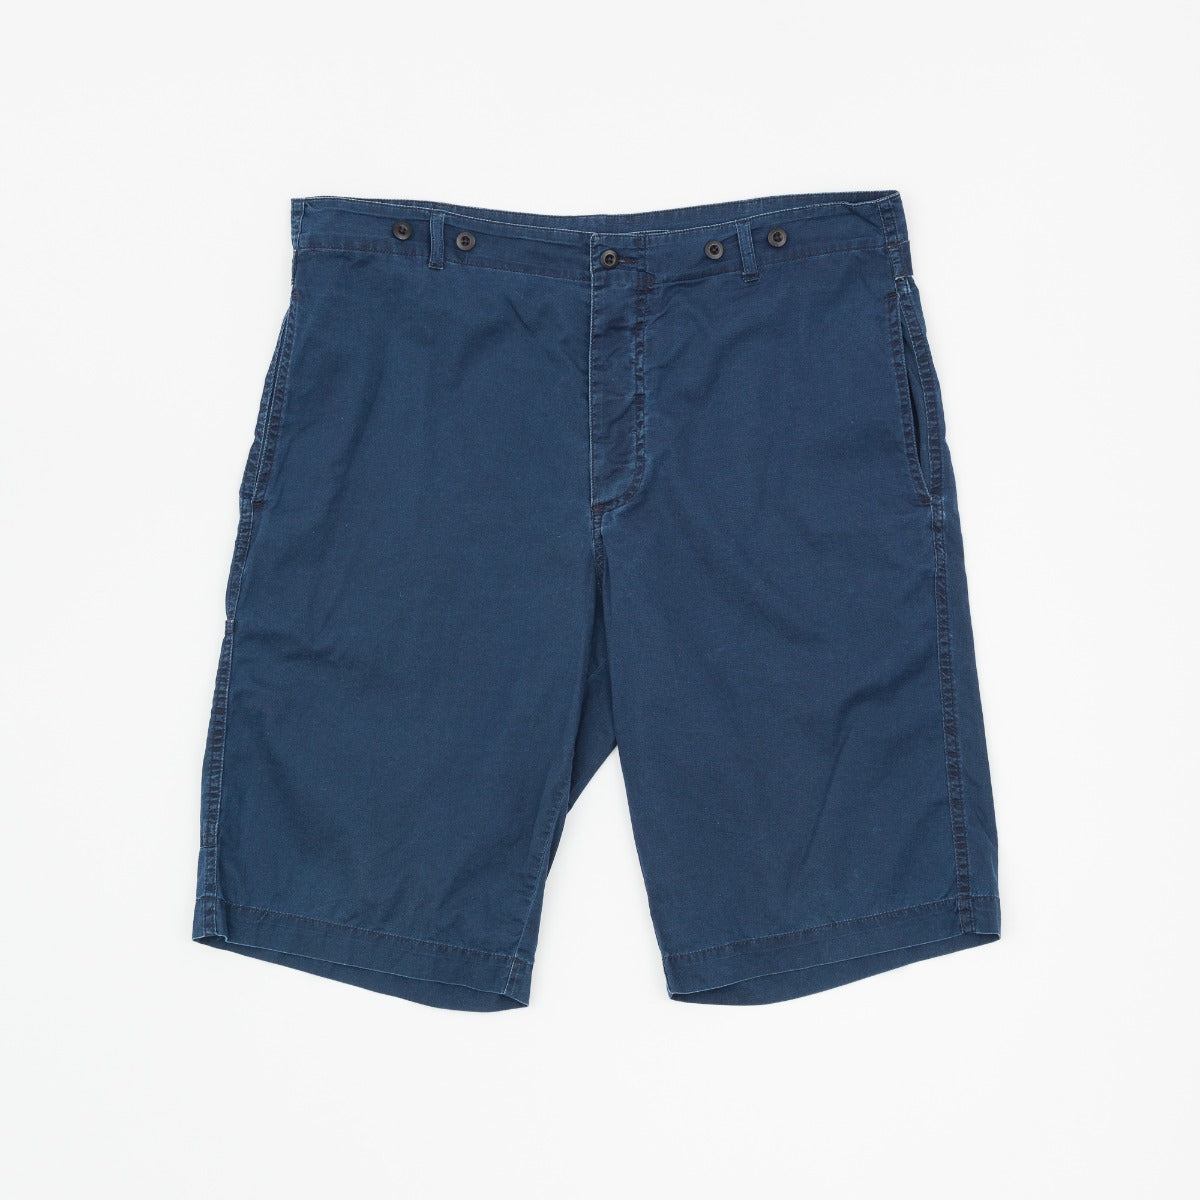 Margaret Howell MHL Cotton Shorts